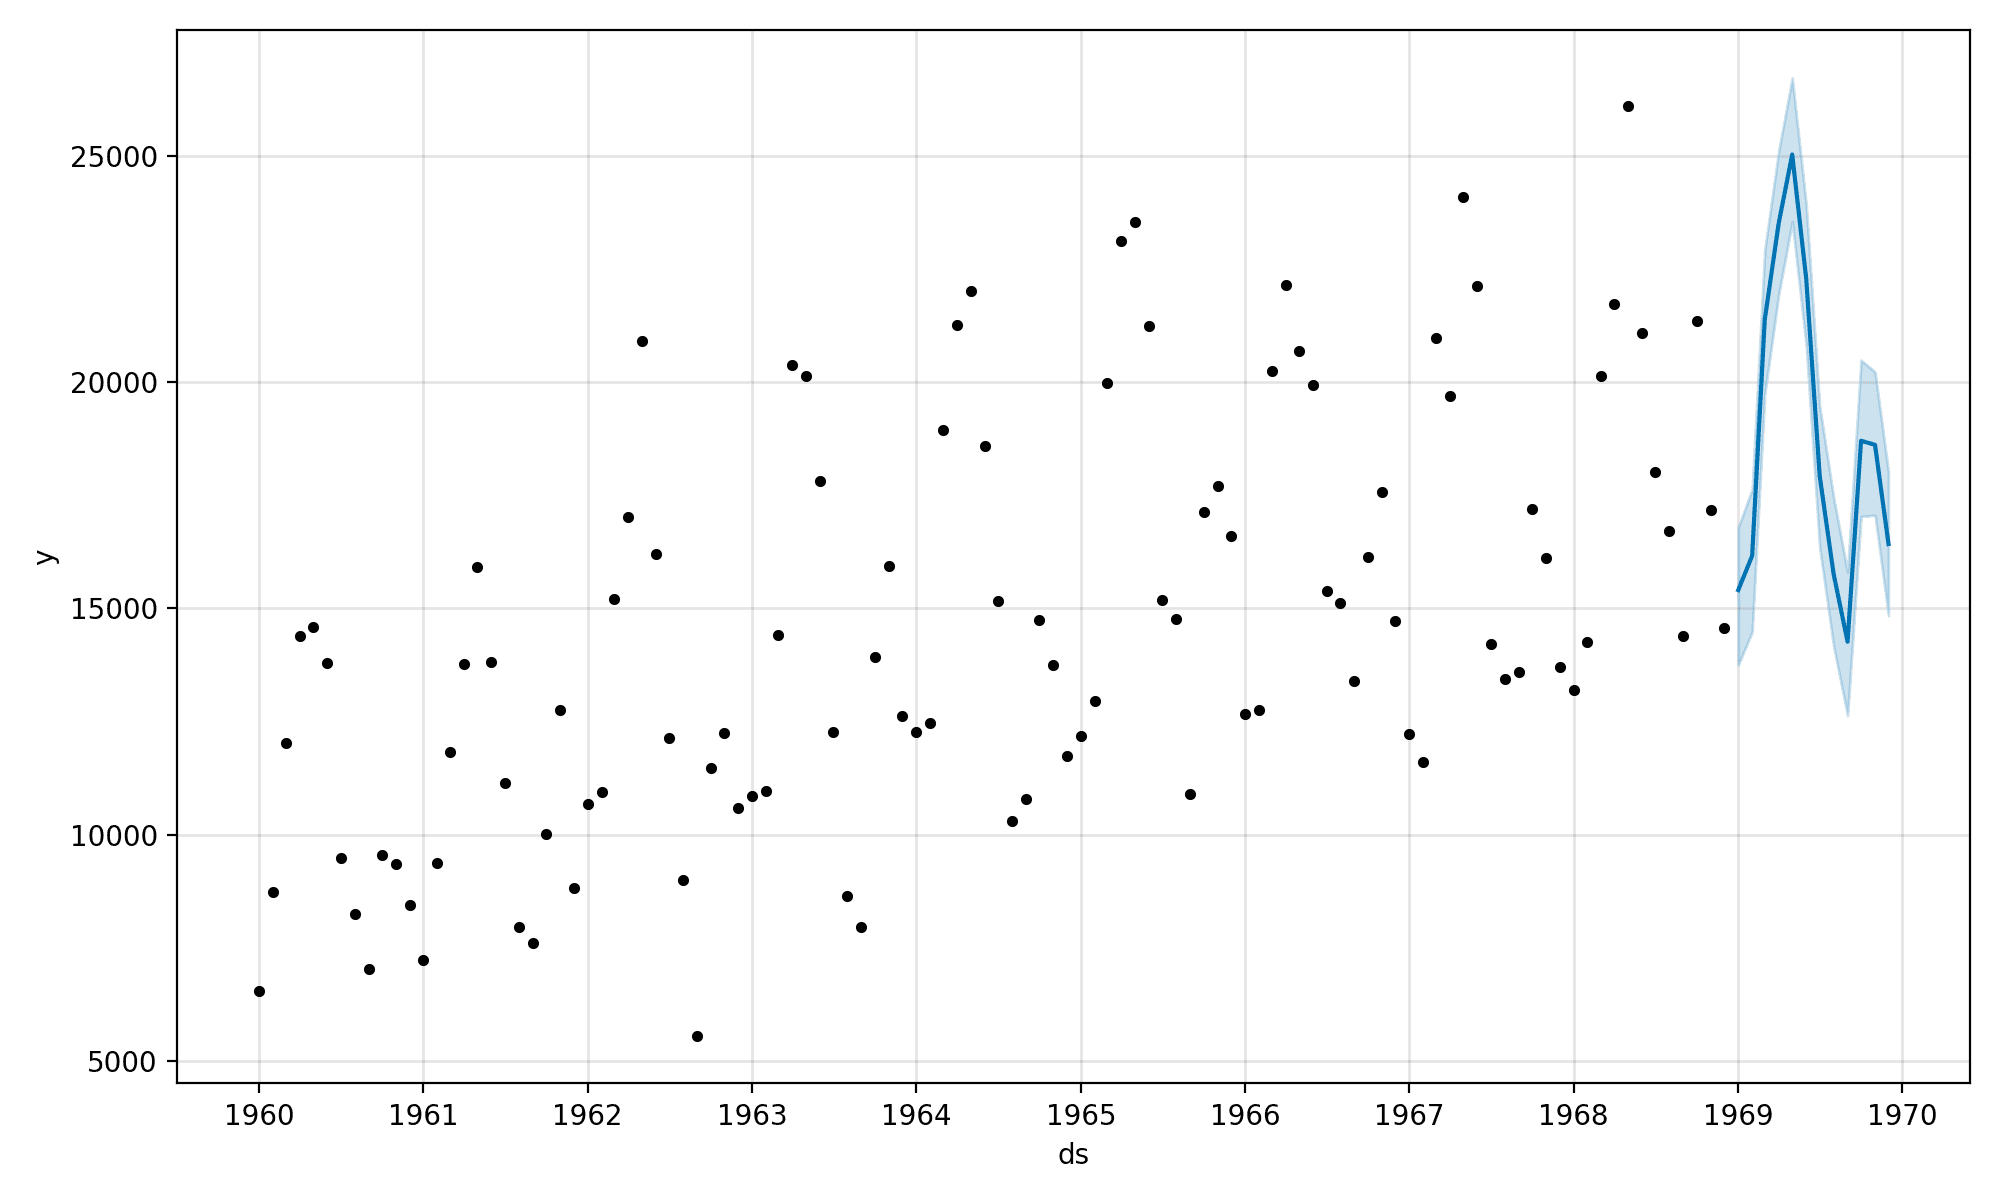 Plot of Time Series and Out-of-Sample Forecast With Prophet